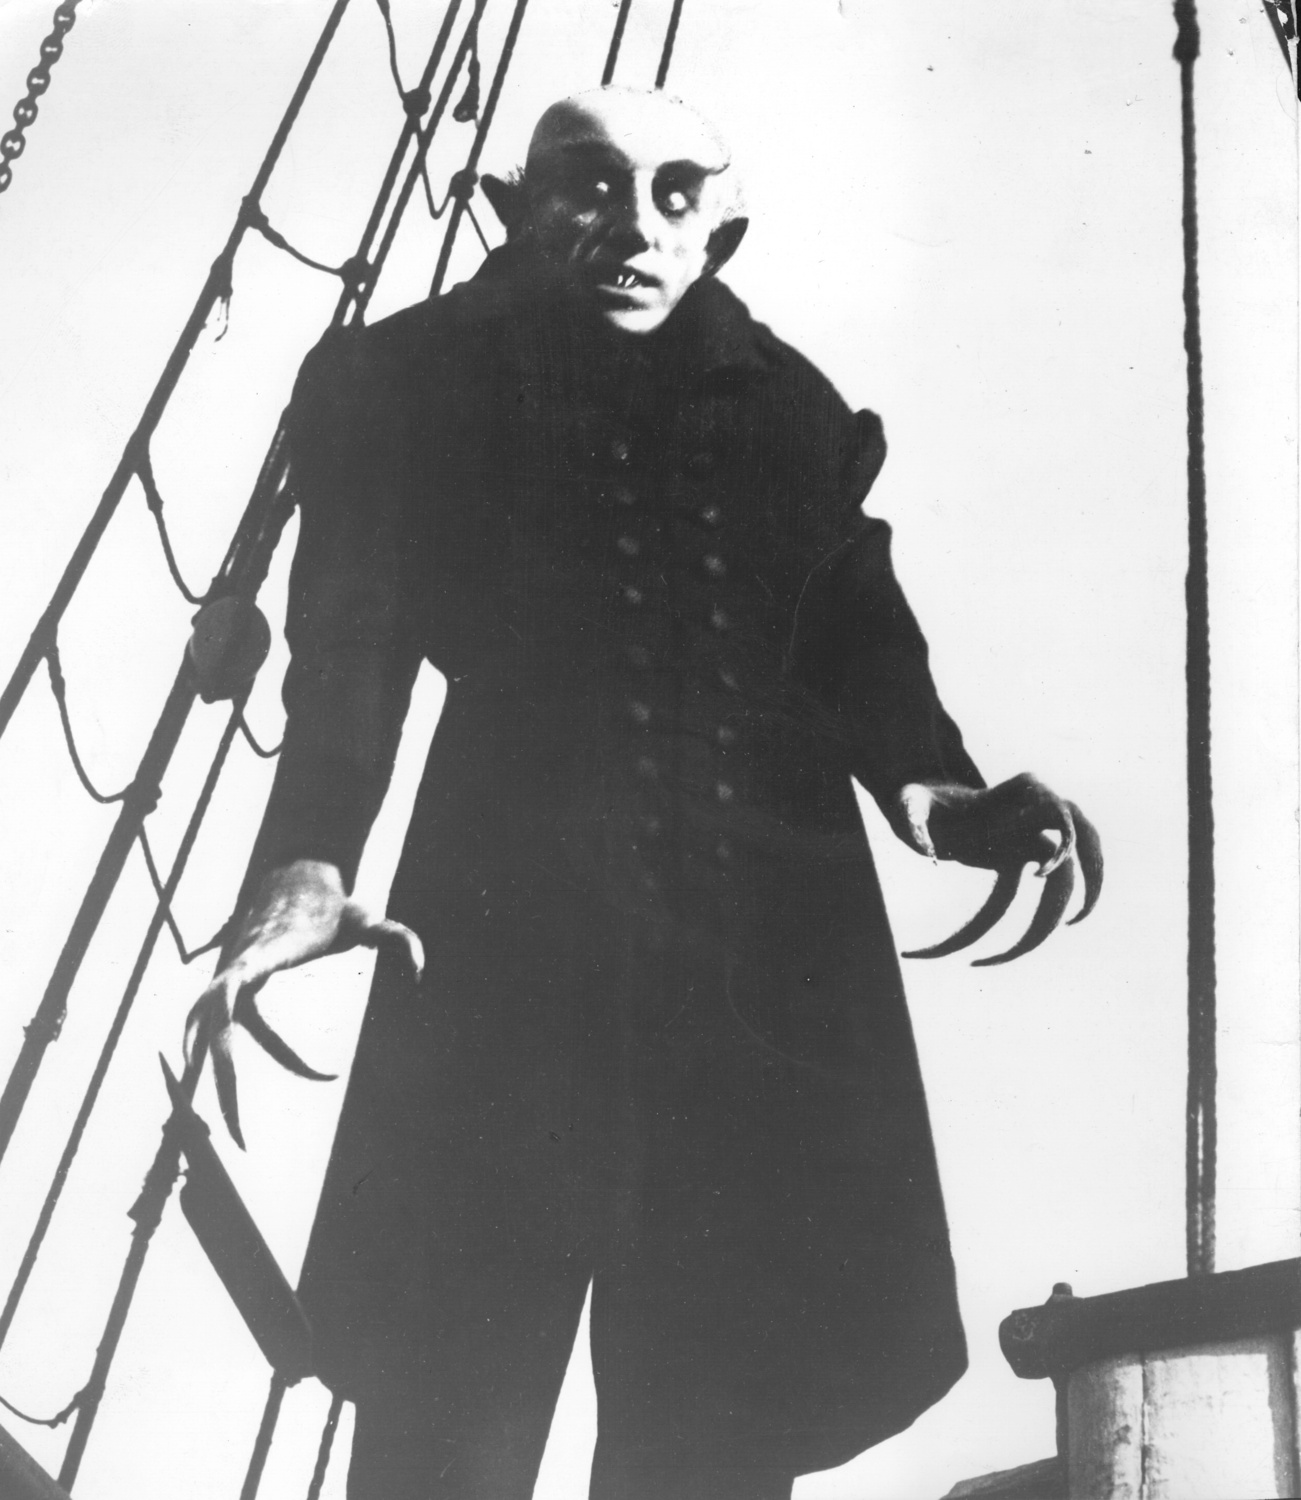 nosferatu directed by fw murnau essay Essay on nosferatu directed by fw murnau - horror films of today employ several film techniques to invoke responses from the viewer however, early silent films relied more on these techniques because without a script, the viewer needs another way to interpret the film.